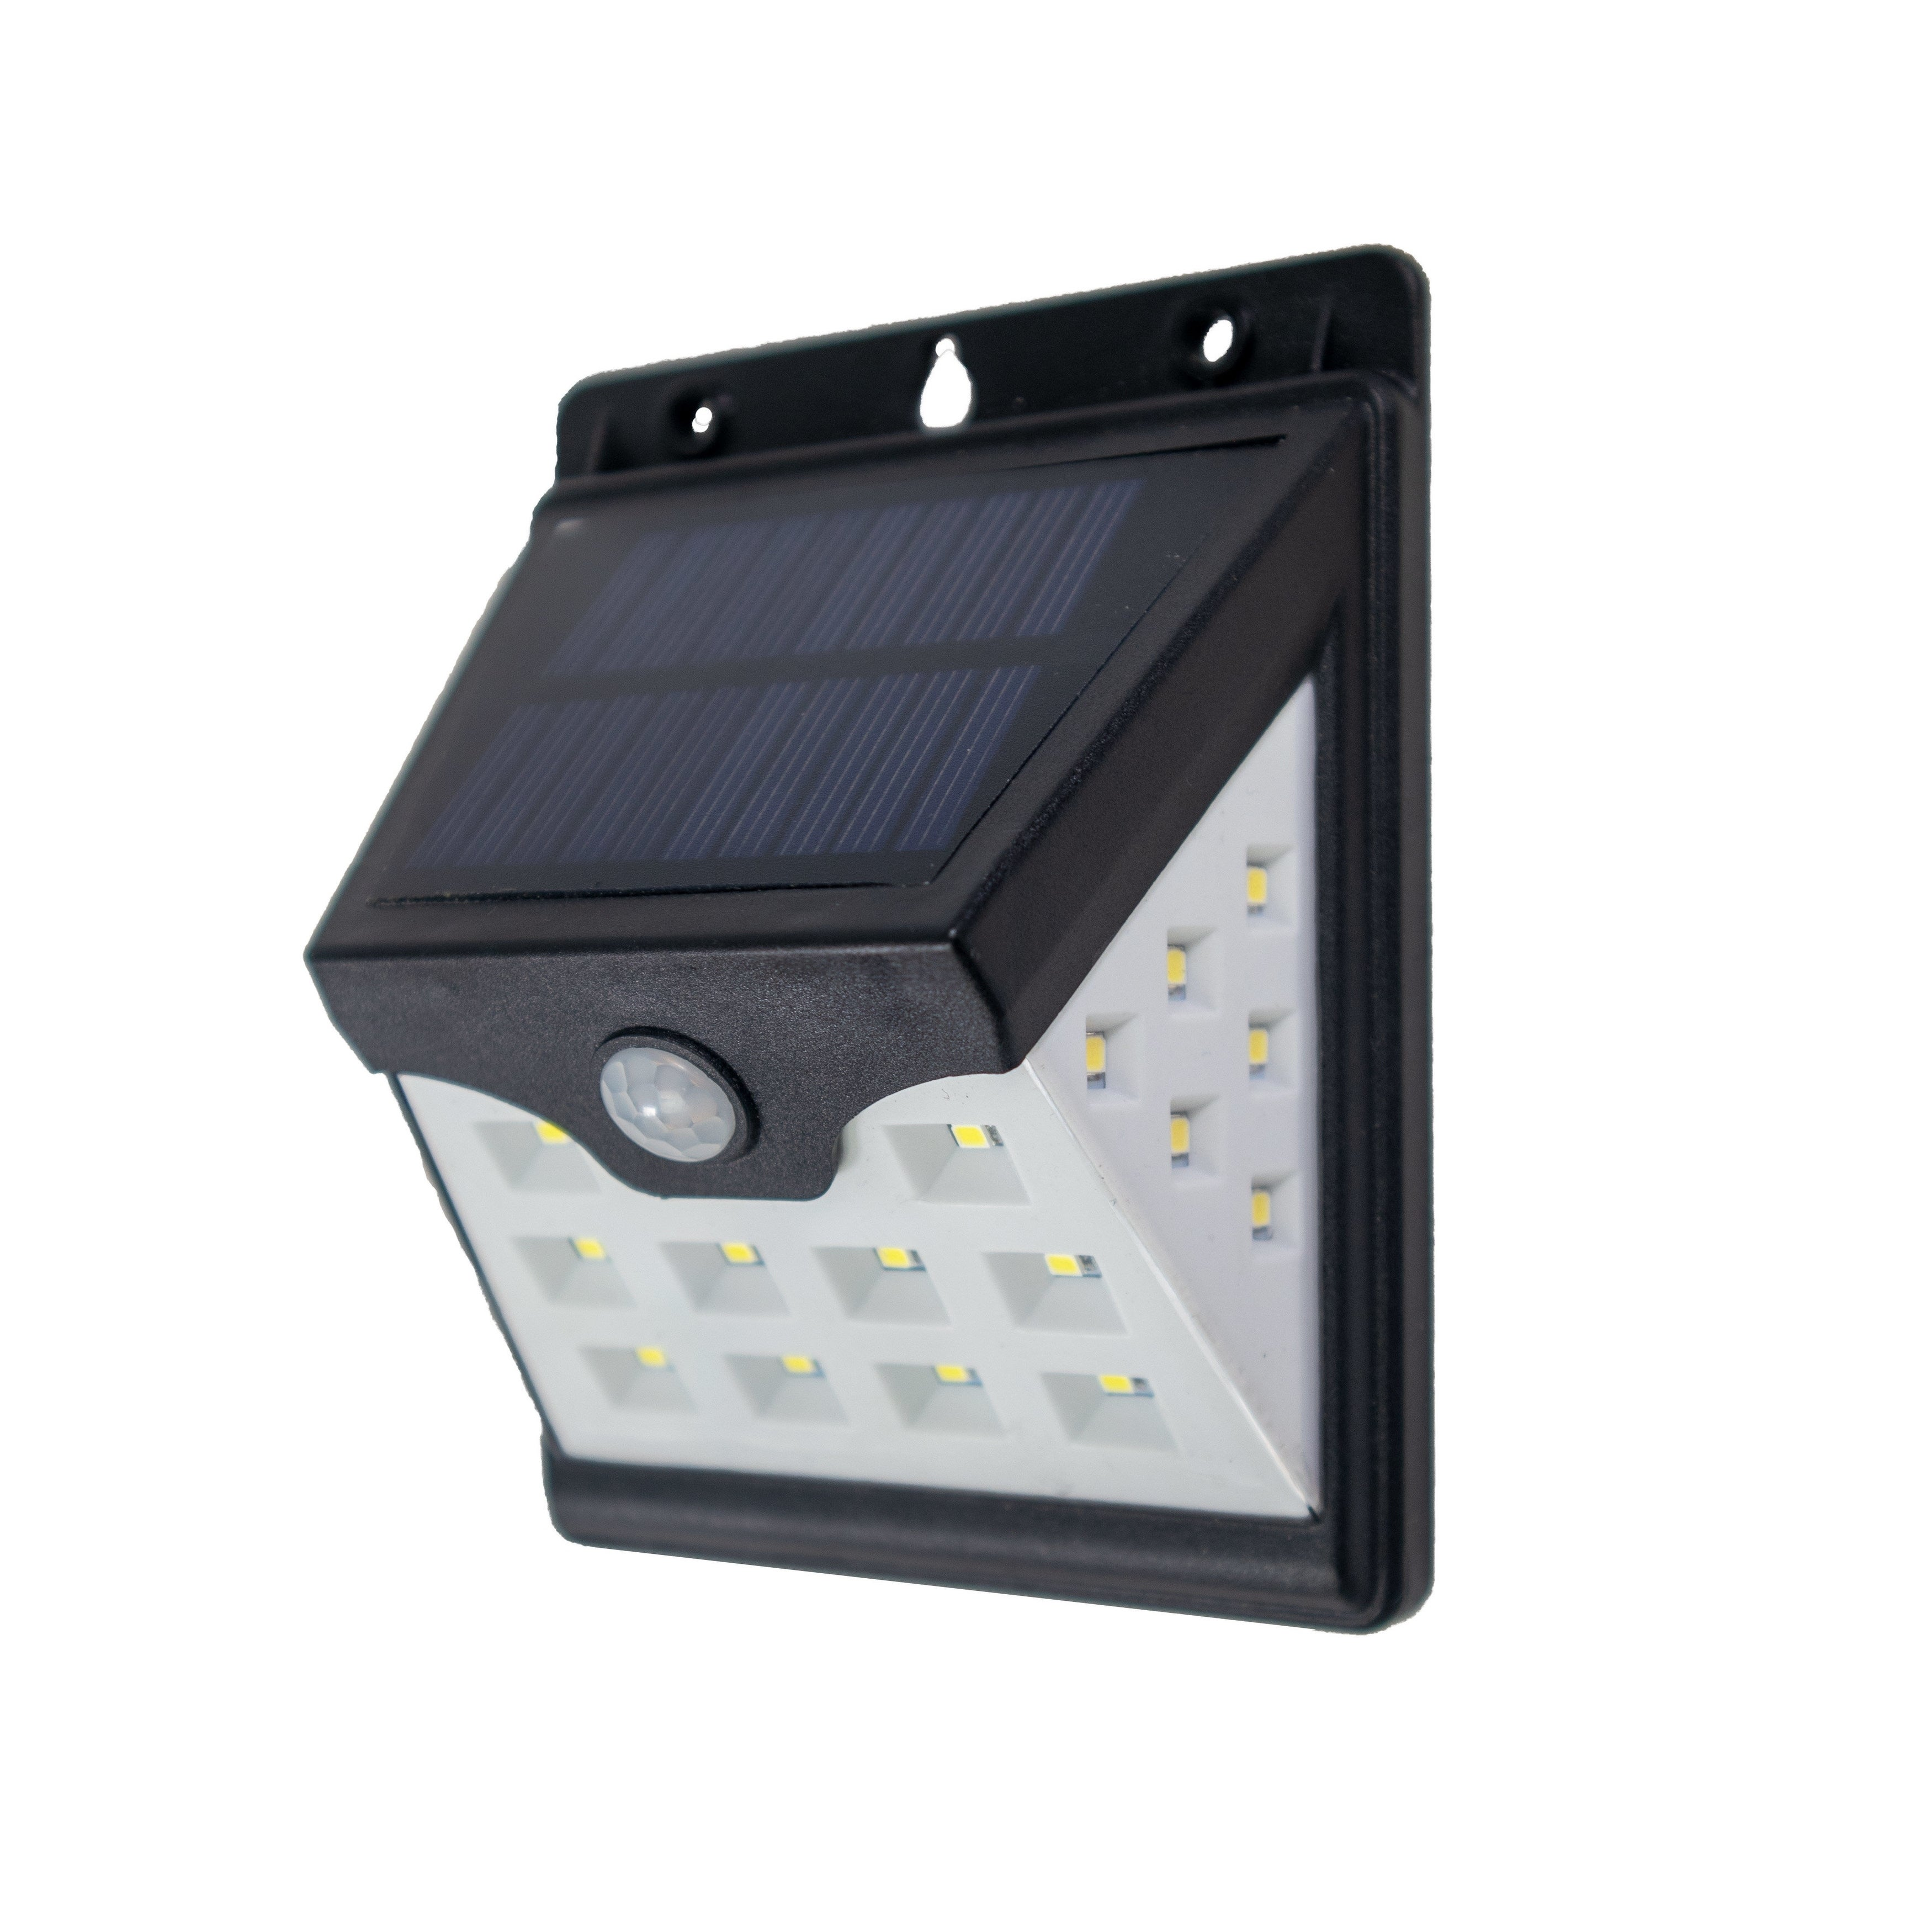 Image of: Shop Black Friday Deals On 22 Led Solar Lights Wireless Waterproof Motion Sensor Outdoor Light For Patio Deck Yard With Motion Activated Auto On Off Overstock 29930577